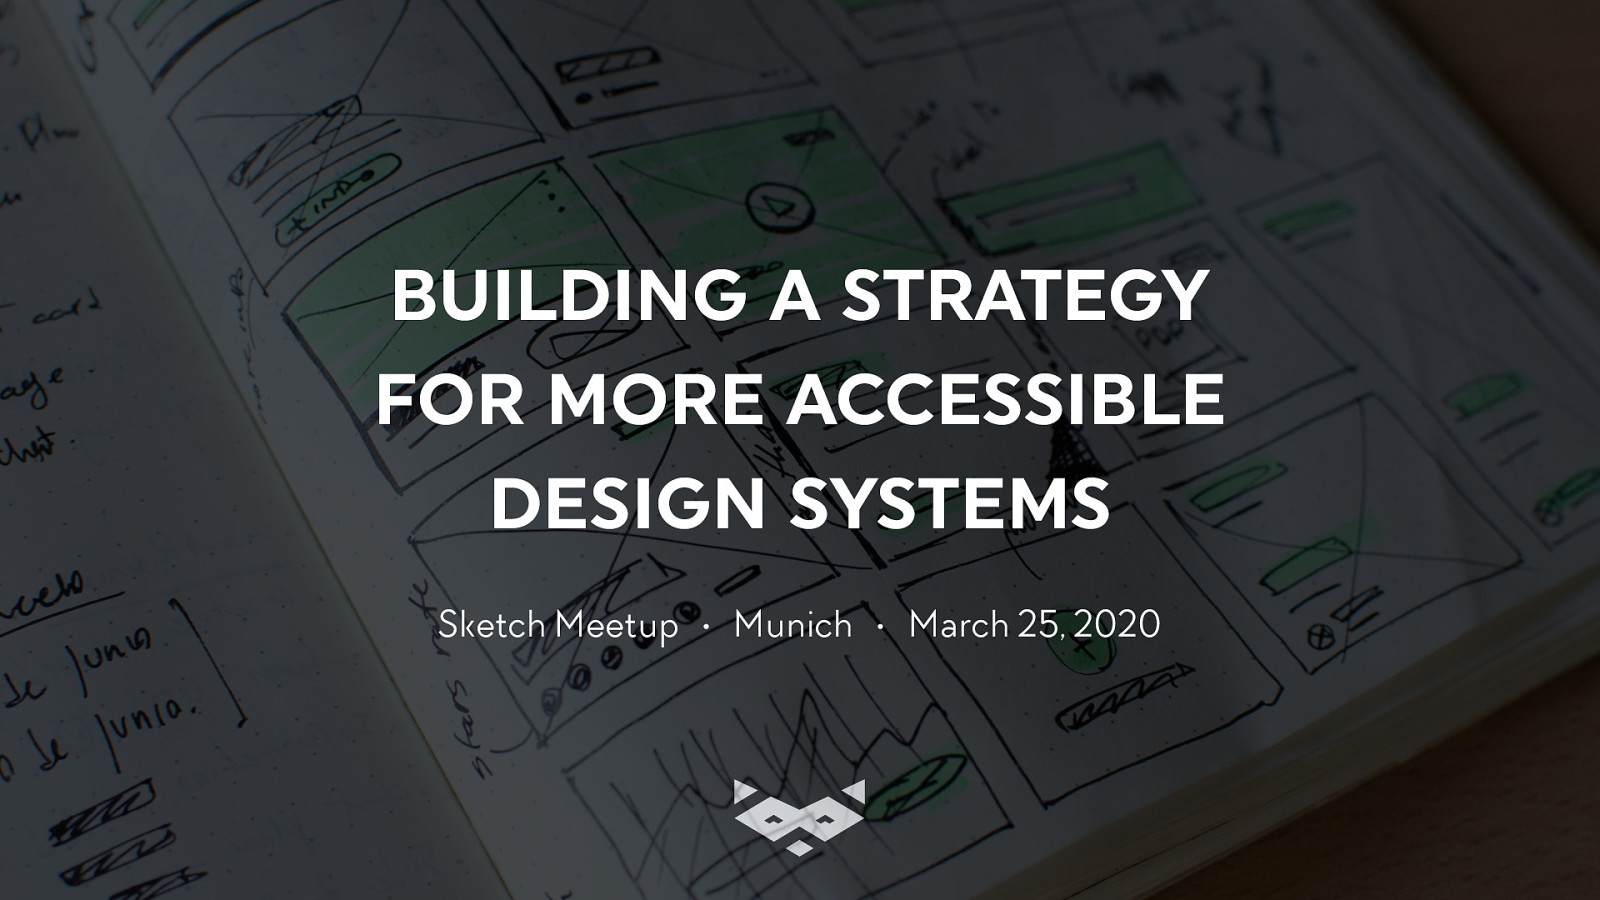 Building a design strategy for more accessible Design Systems